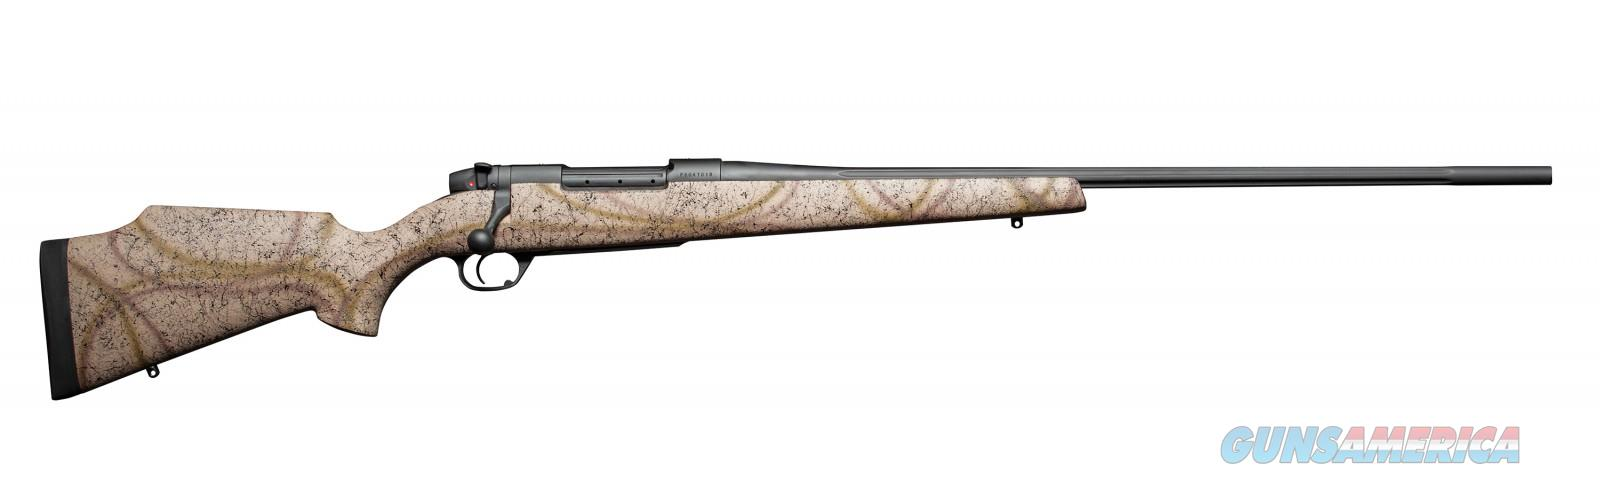 """Weatherby Mark V Outfitter 270 Wby 26"""" Desert Camo MOTM270WR6O   Guns > Rifles > Weatherby Rifles > Sporting"""